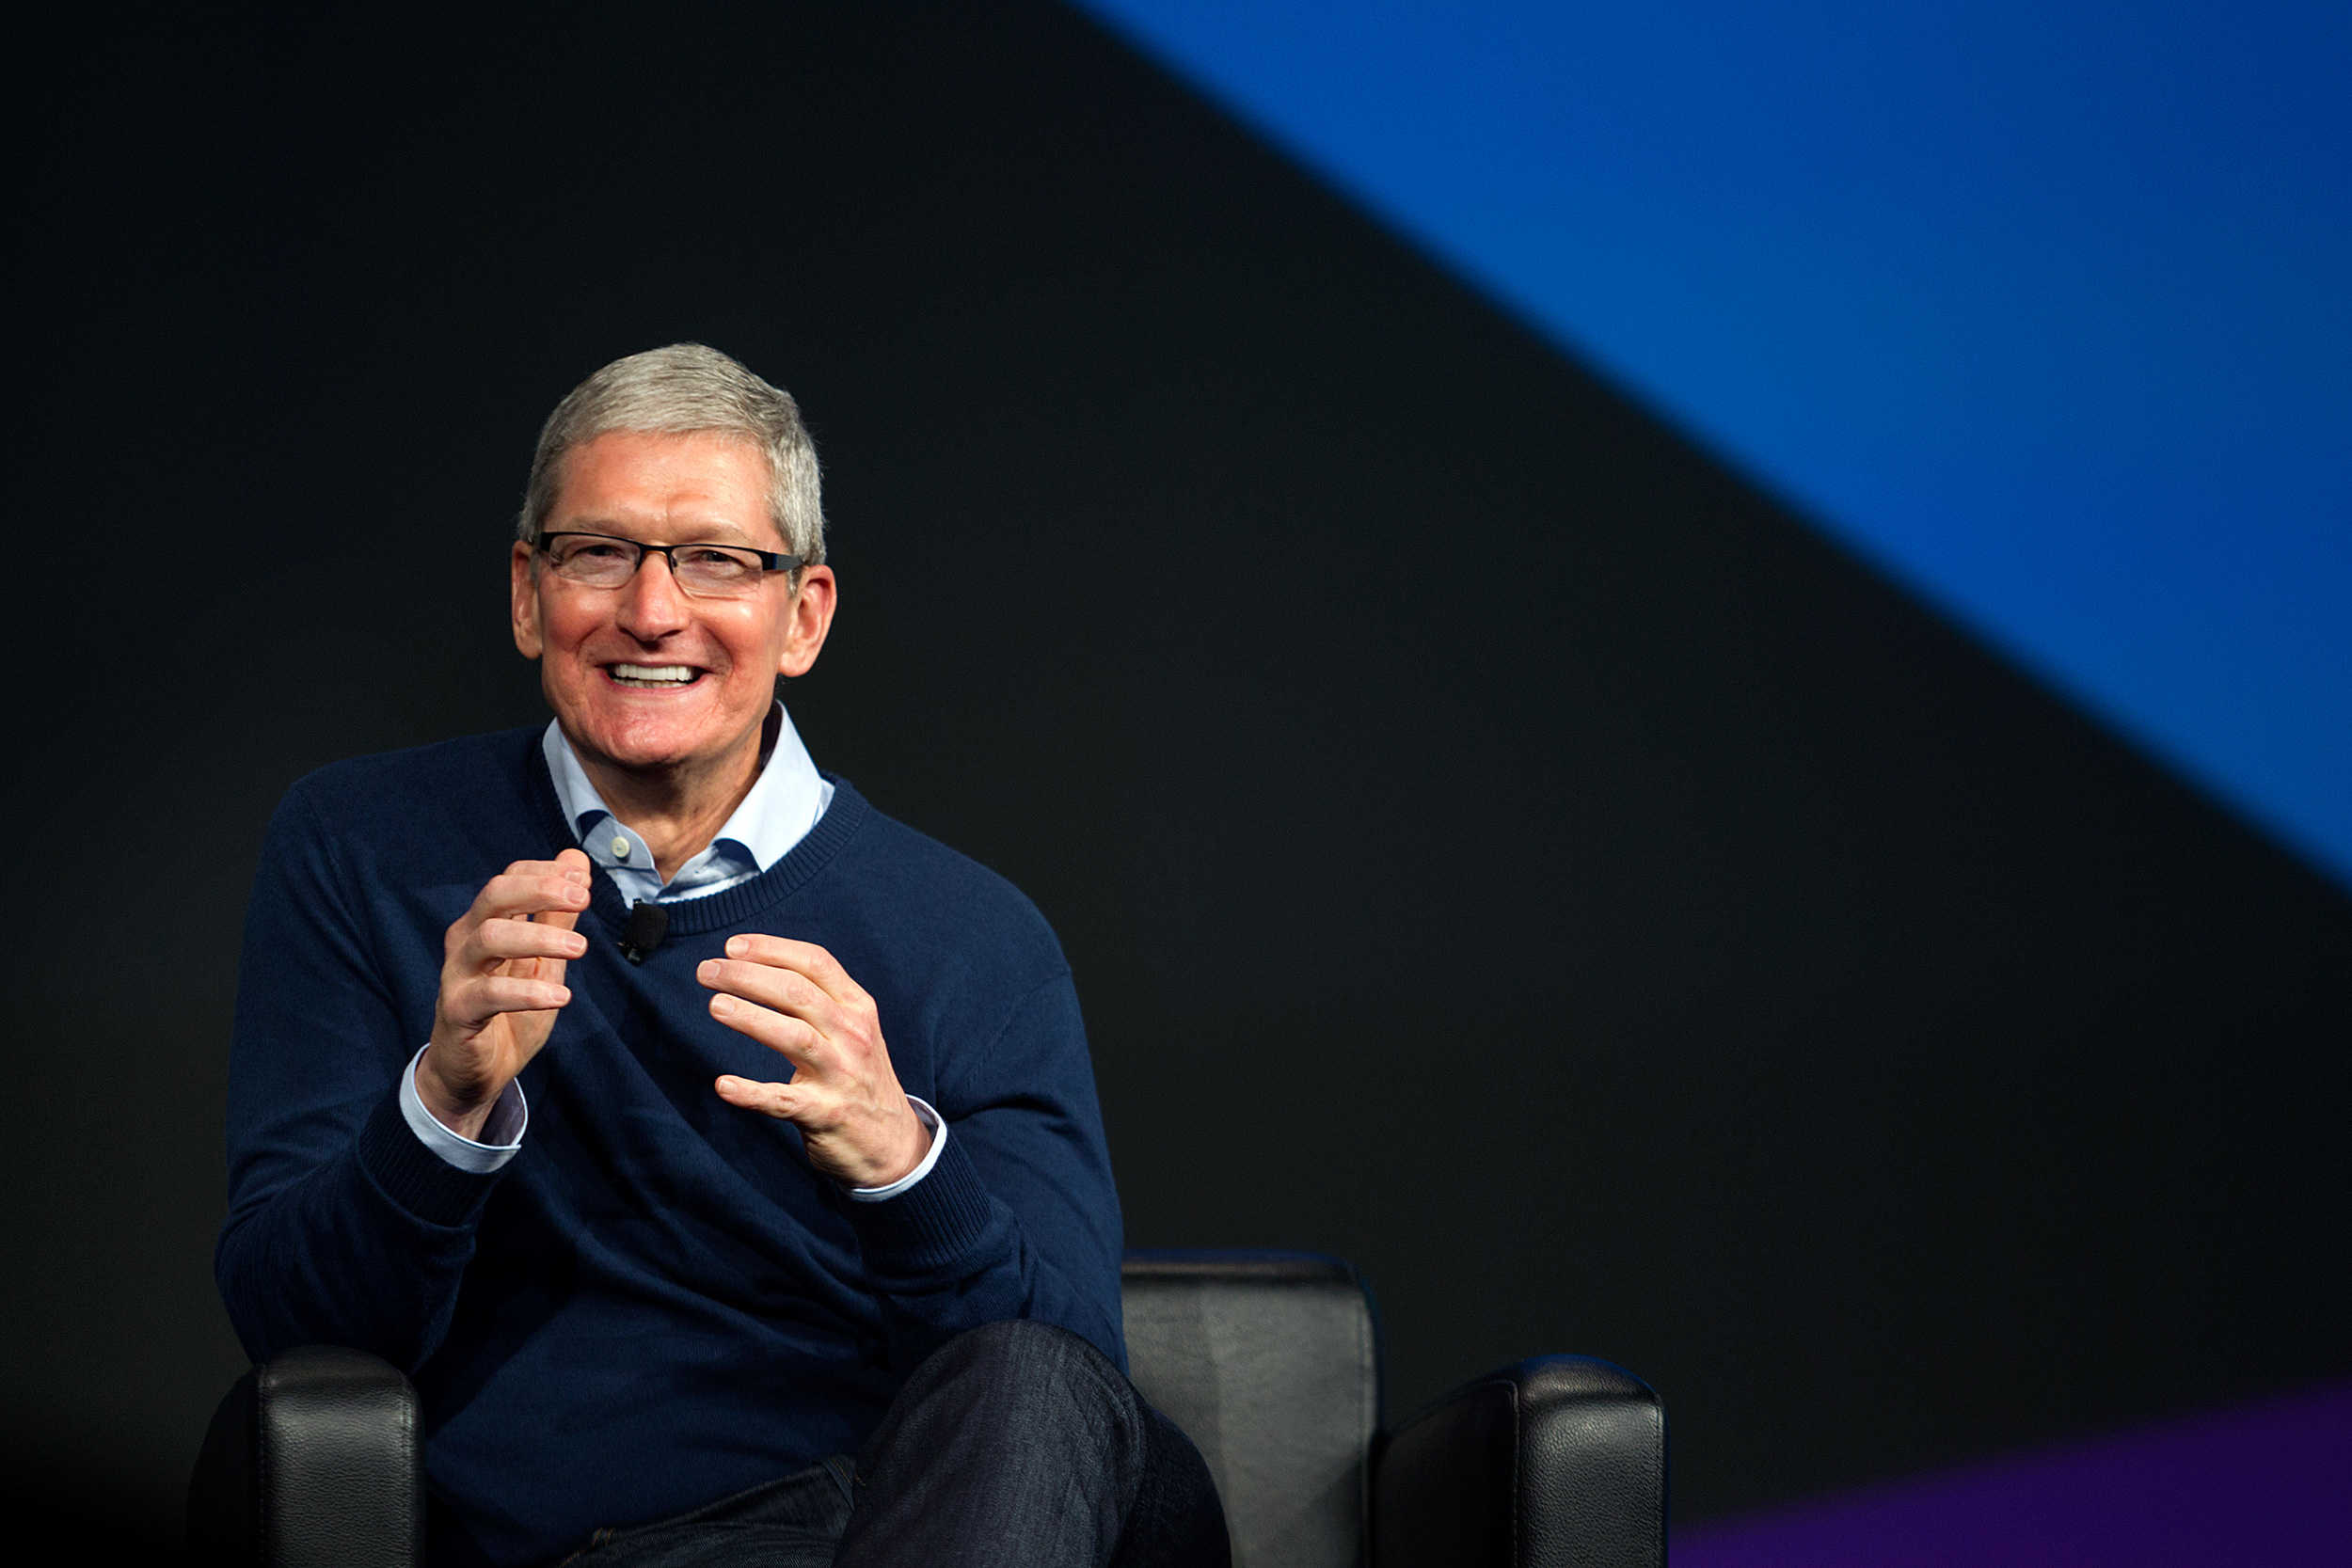 Tim Cook takes home $125 million for Apple's best year since 2009